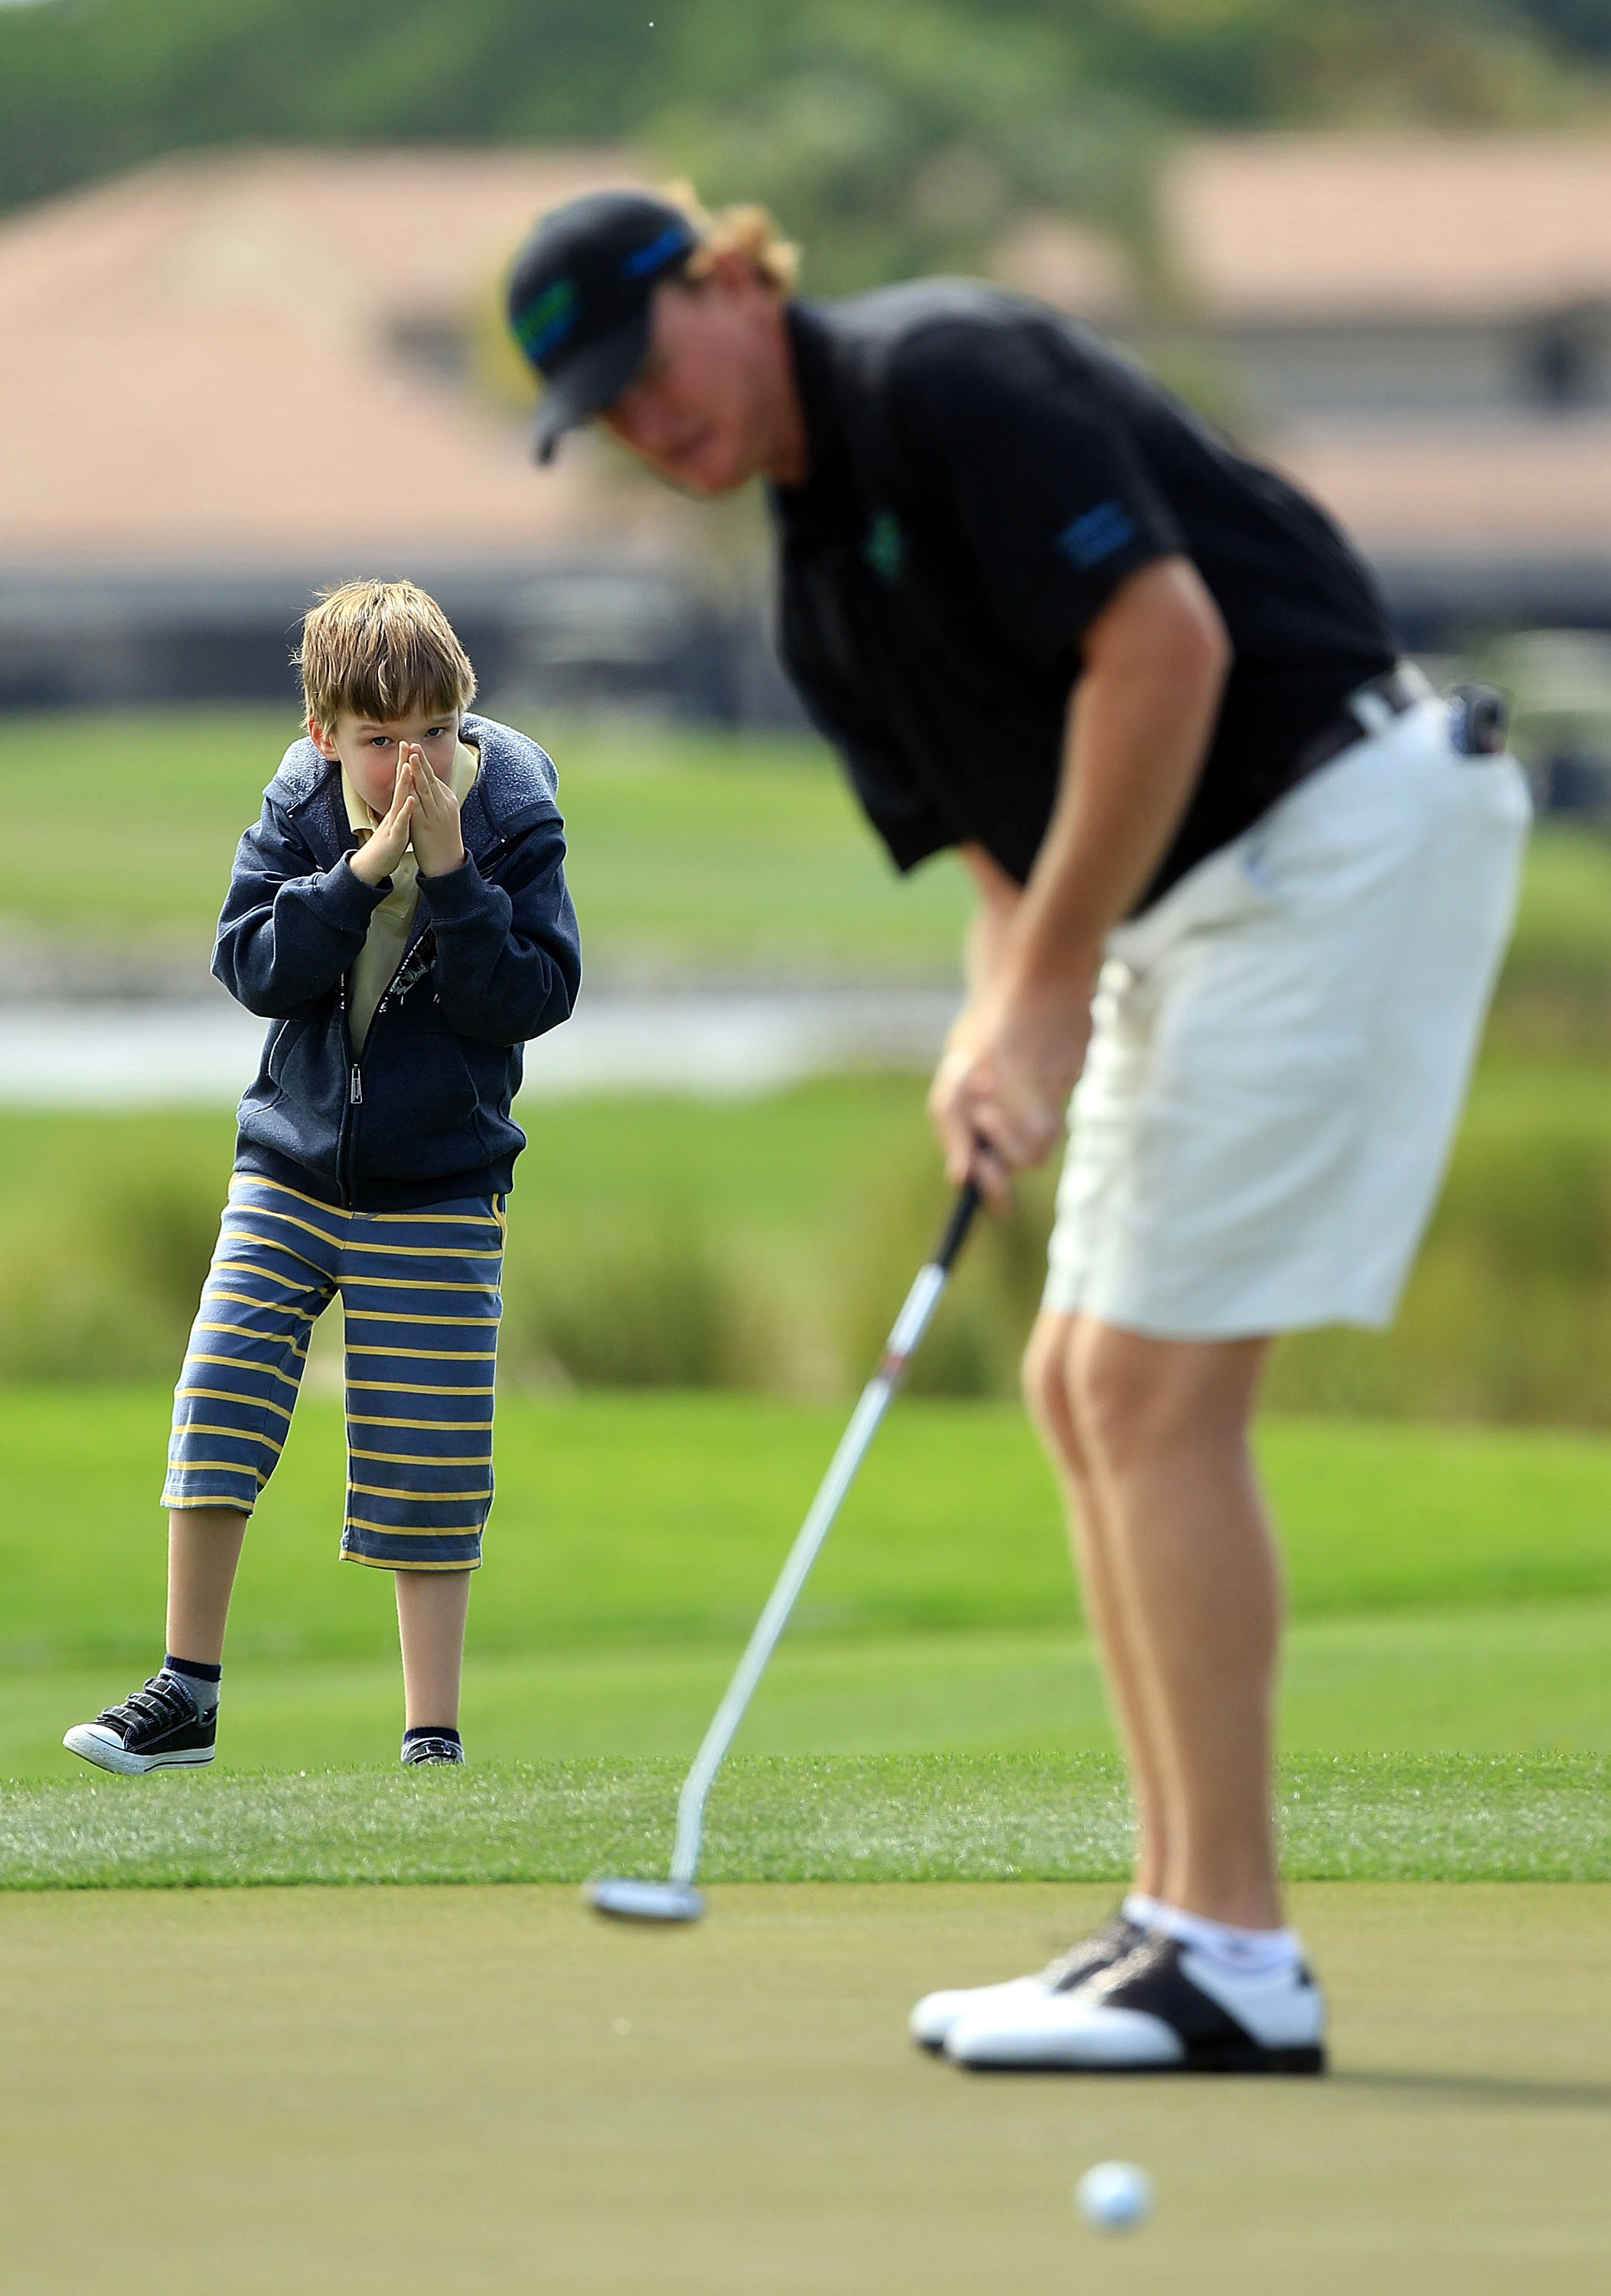 Ben Els watches his father Ernie putt during a pro-am at PGA National on March 15.